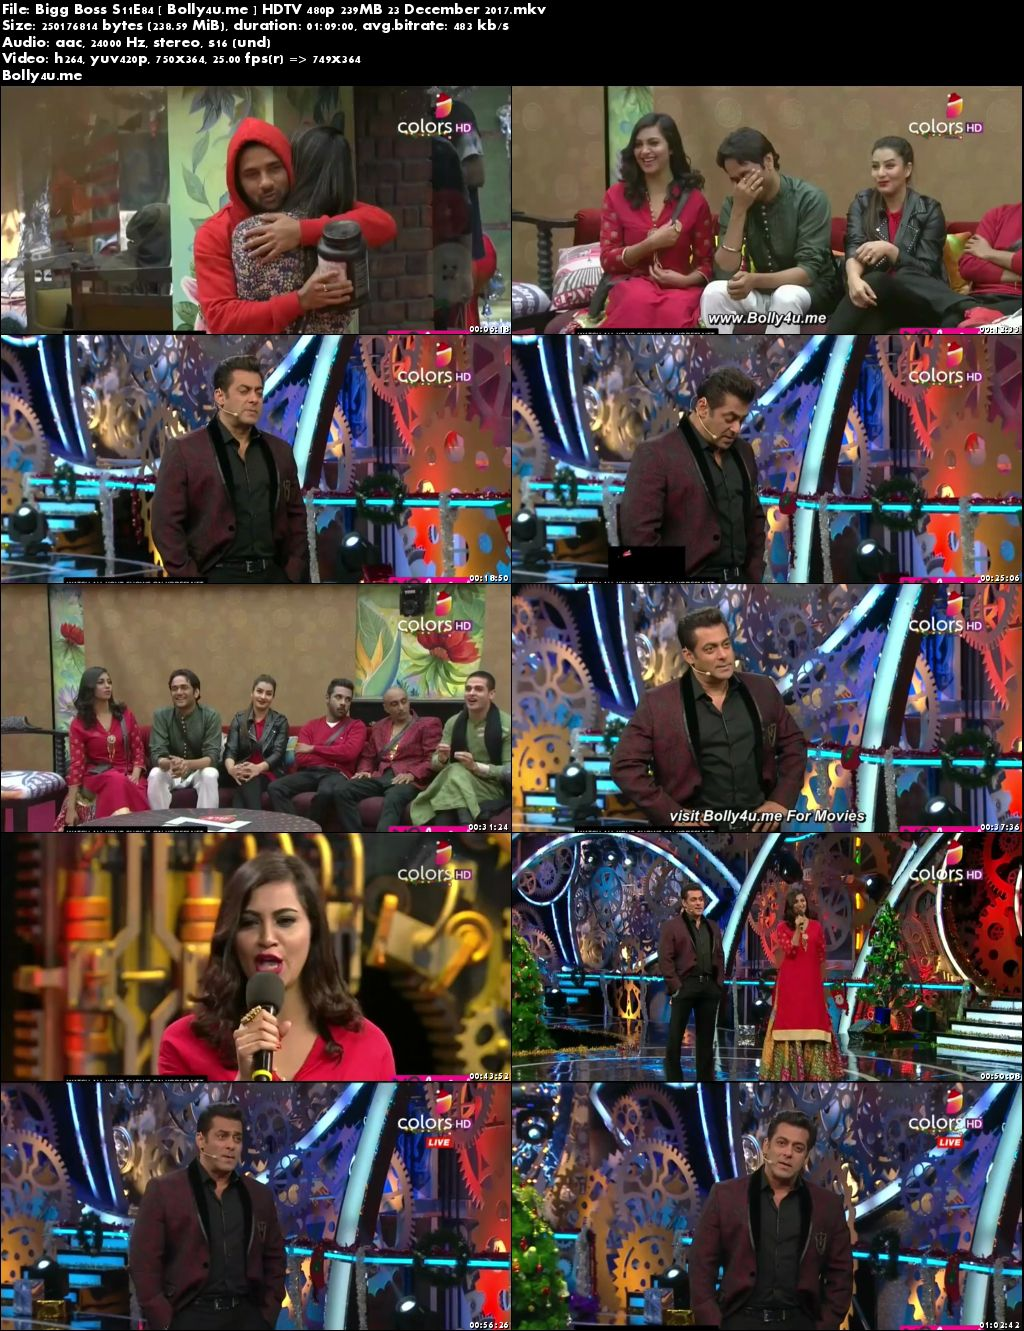 Bigg Boss S11E84 HDTV 480p 200MB 23 Dec 2017 Download